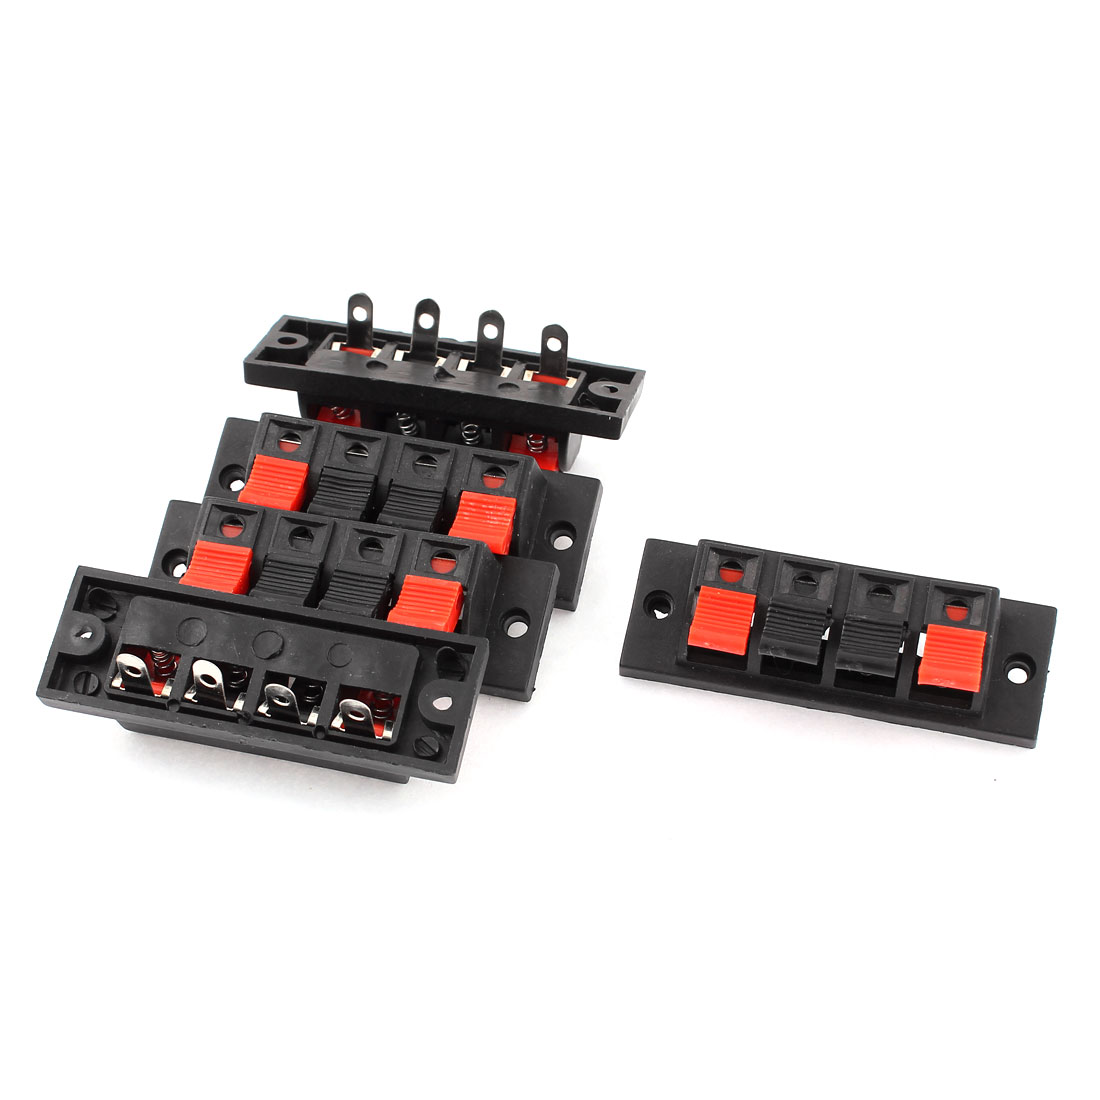 5pcs 4 Way Push Release Connector Plate Stereo Speaker Terminal Strip Block